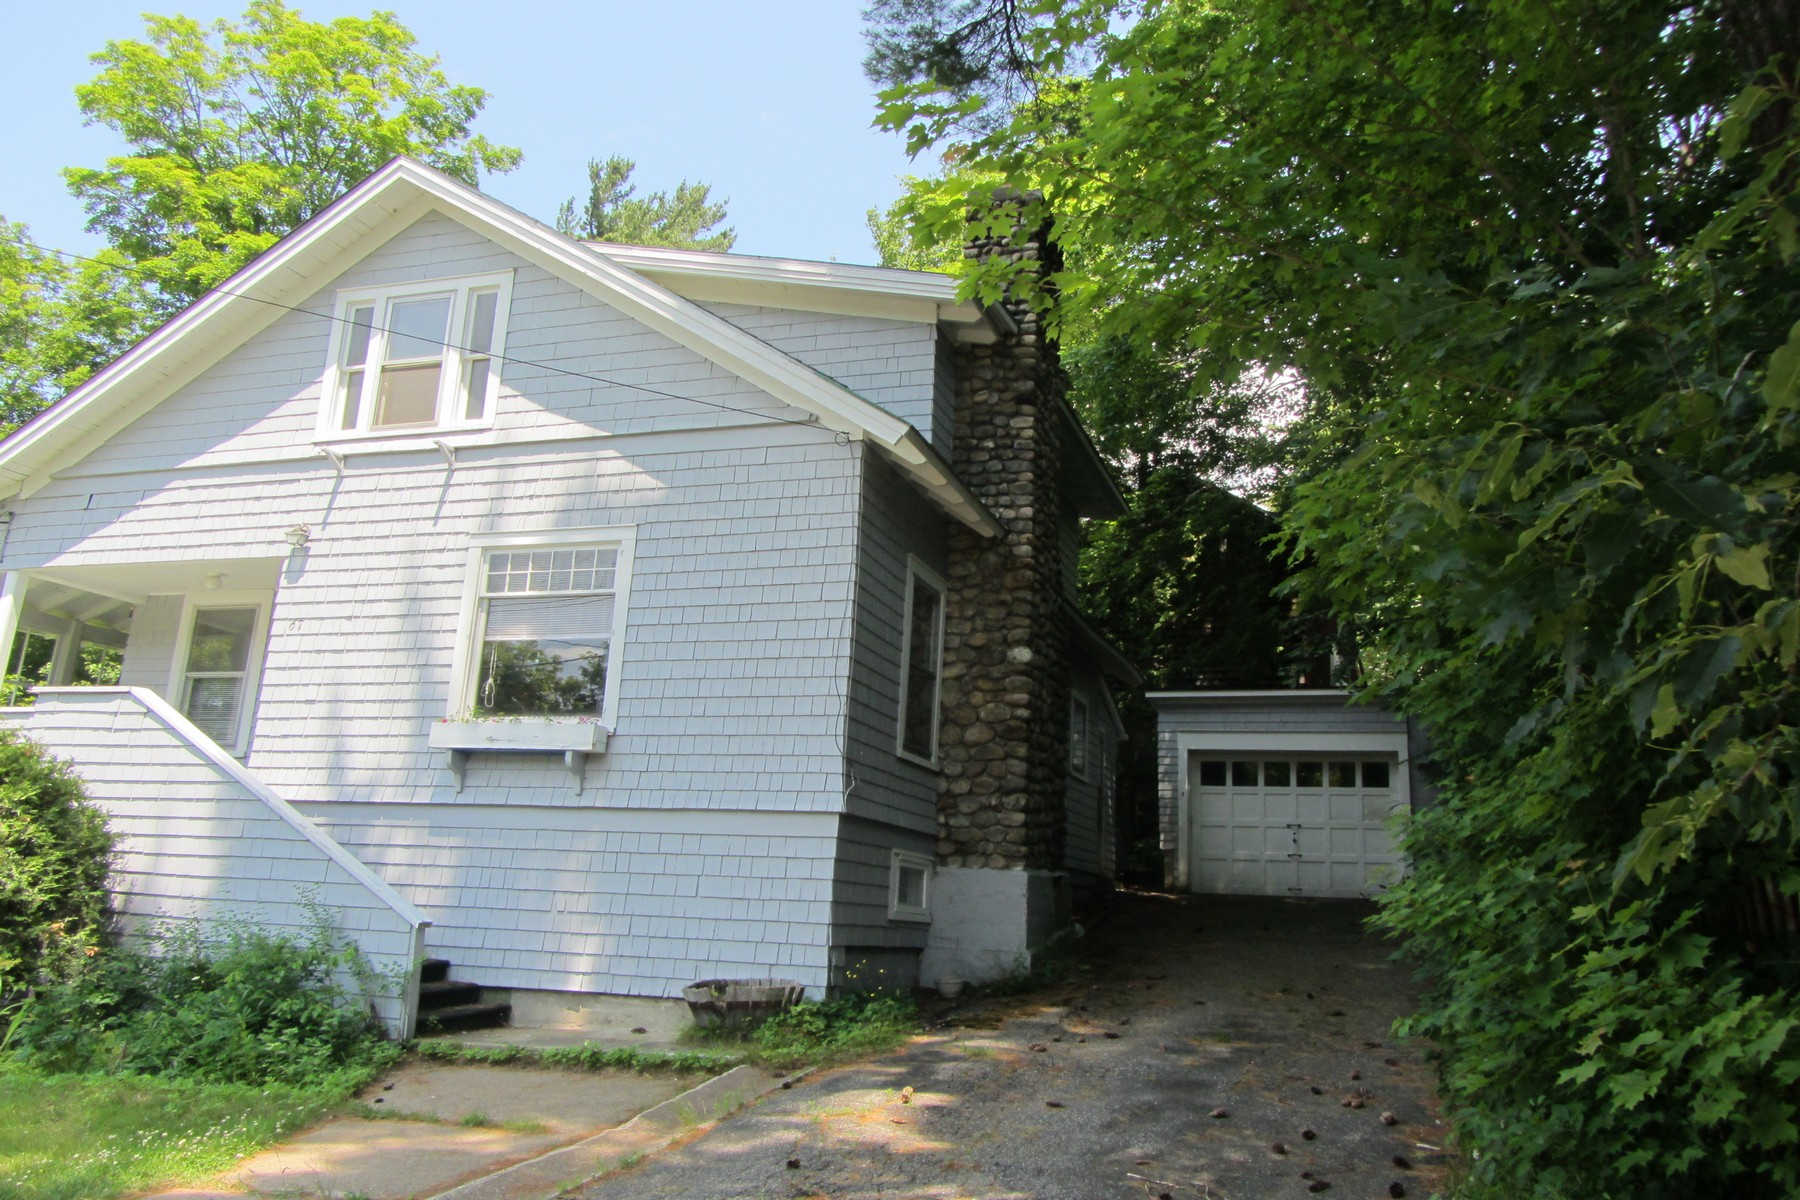 Single Family Home for Sale at Lots of Charm 67 Acorn Street Lake Placid, New York 12946 United States